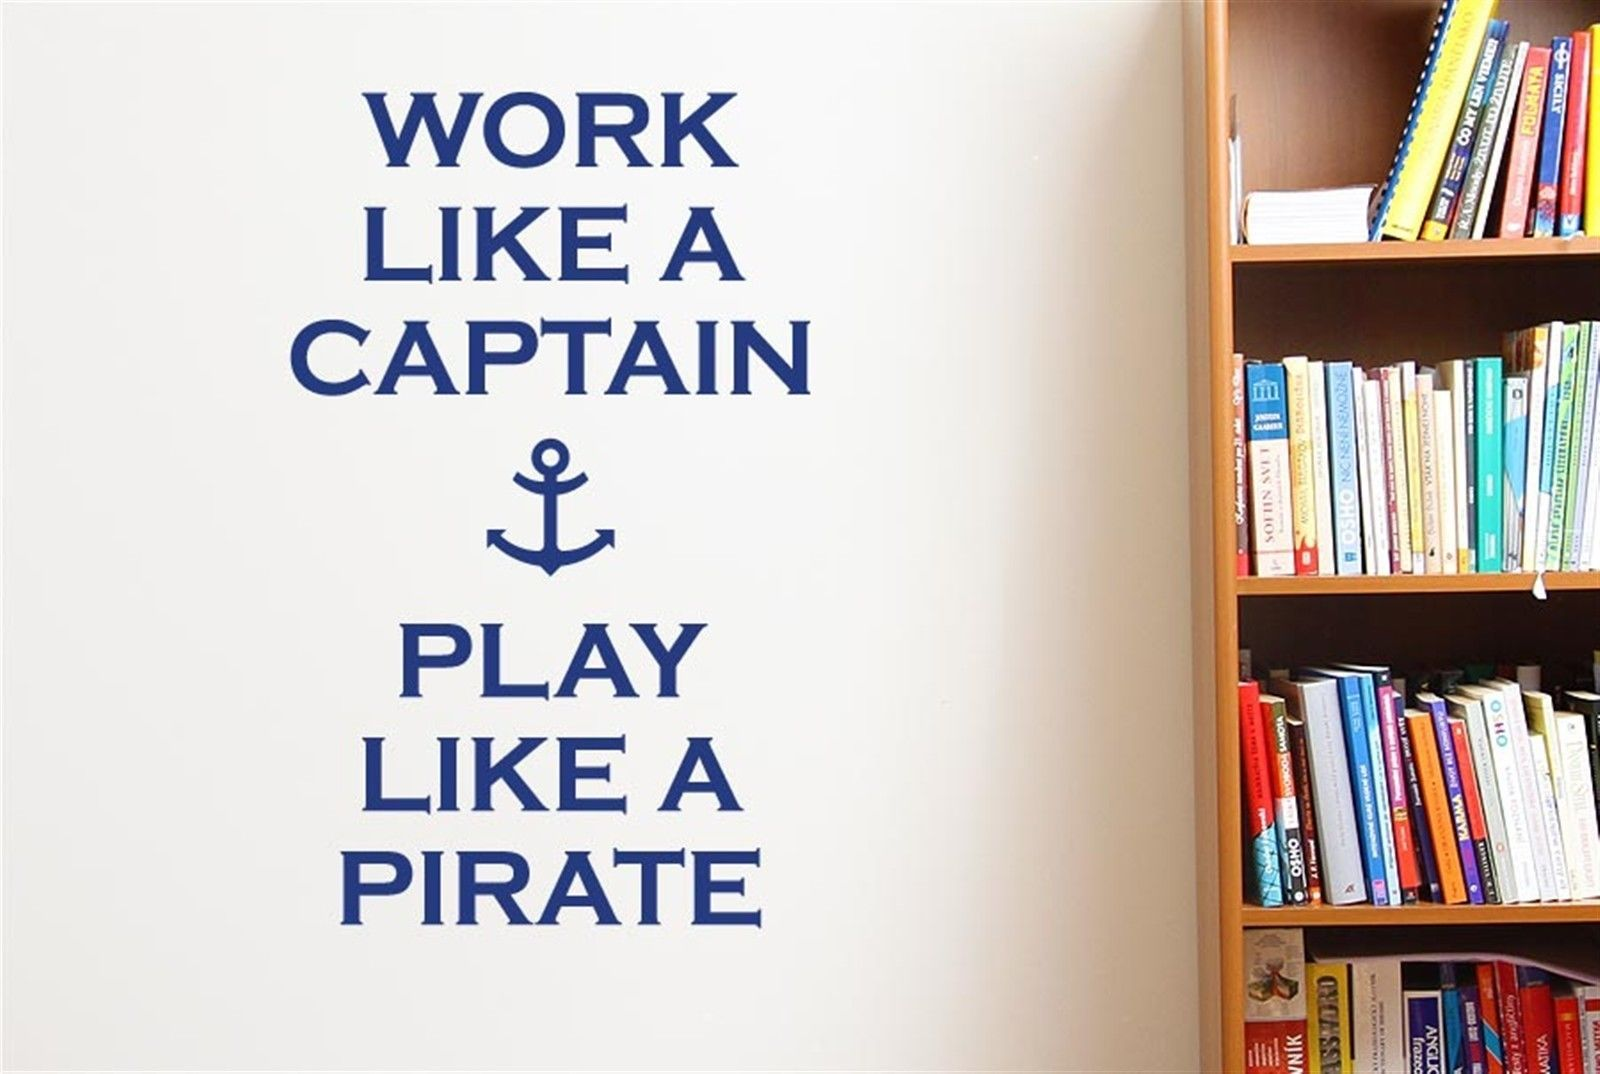 compare prices on pirate decals online shopping buy low price work like a captain play like a pirate wall stickers decals art quotes free shipping